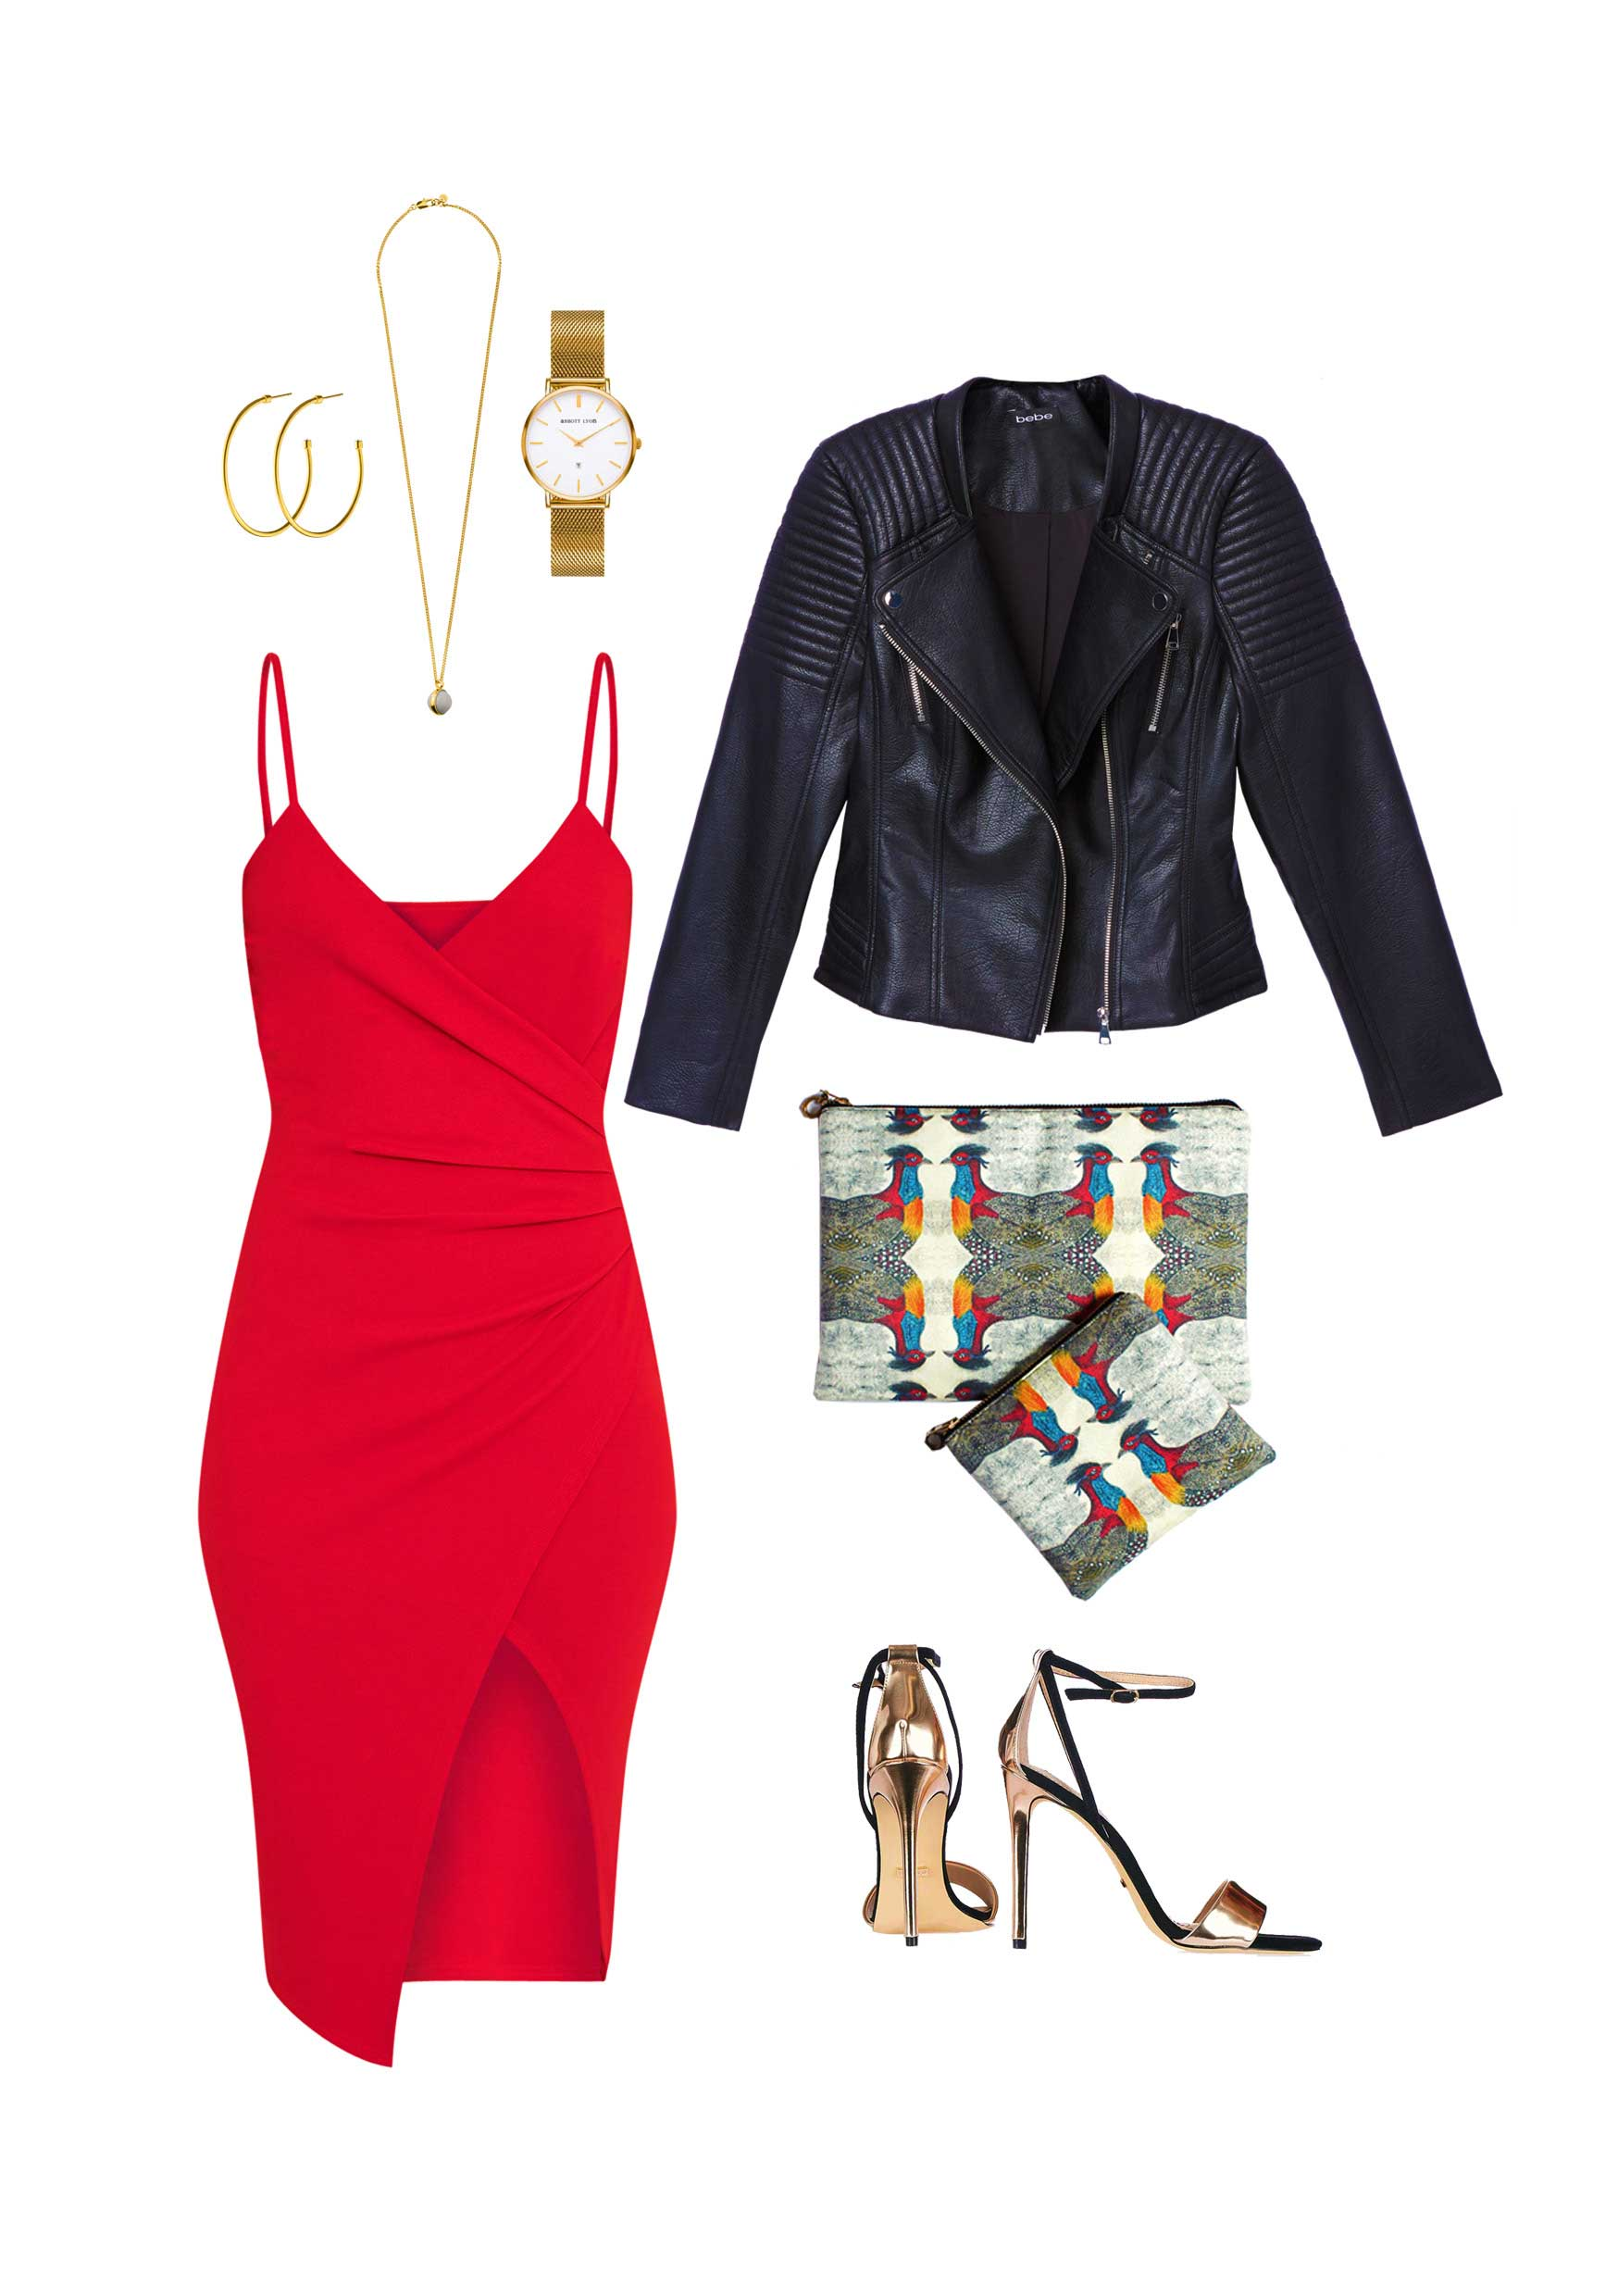 Black dress red heels accessories - Gold Accessories Would Go Perfectly With This Look Alongside A Pair Of Gold Open Toe Heels And Finish With An Oversized Clutch From Patch Nyc